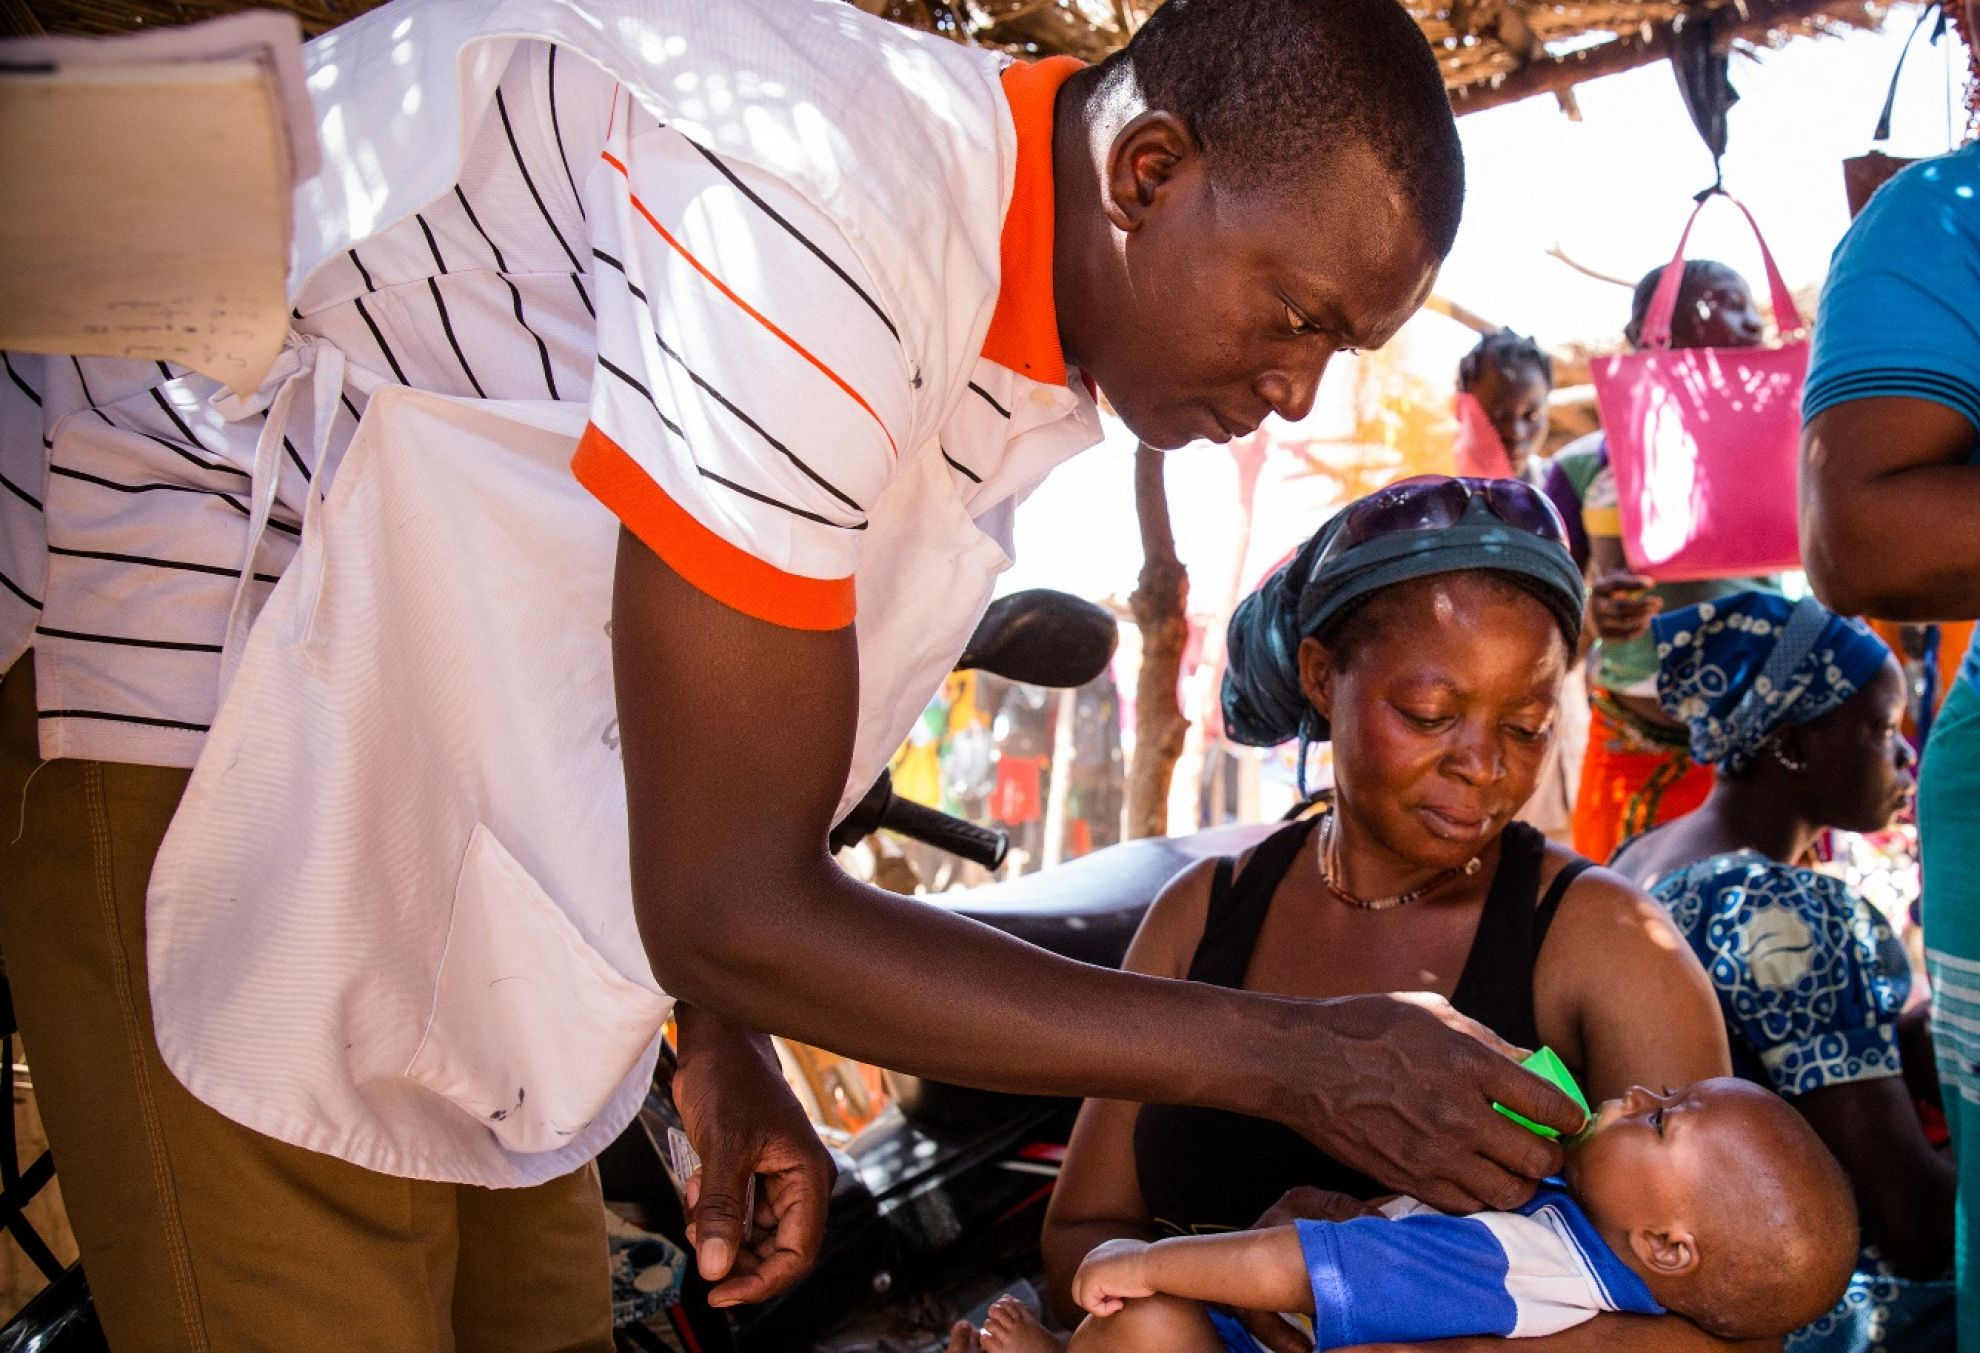 Latest News Malaria consortiumandrsquo s seasonal malaria chemoprevention programme is recommended top charity for second year in a row